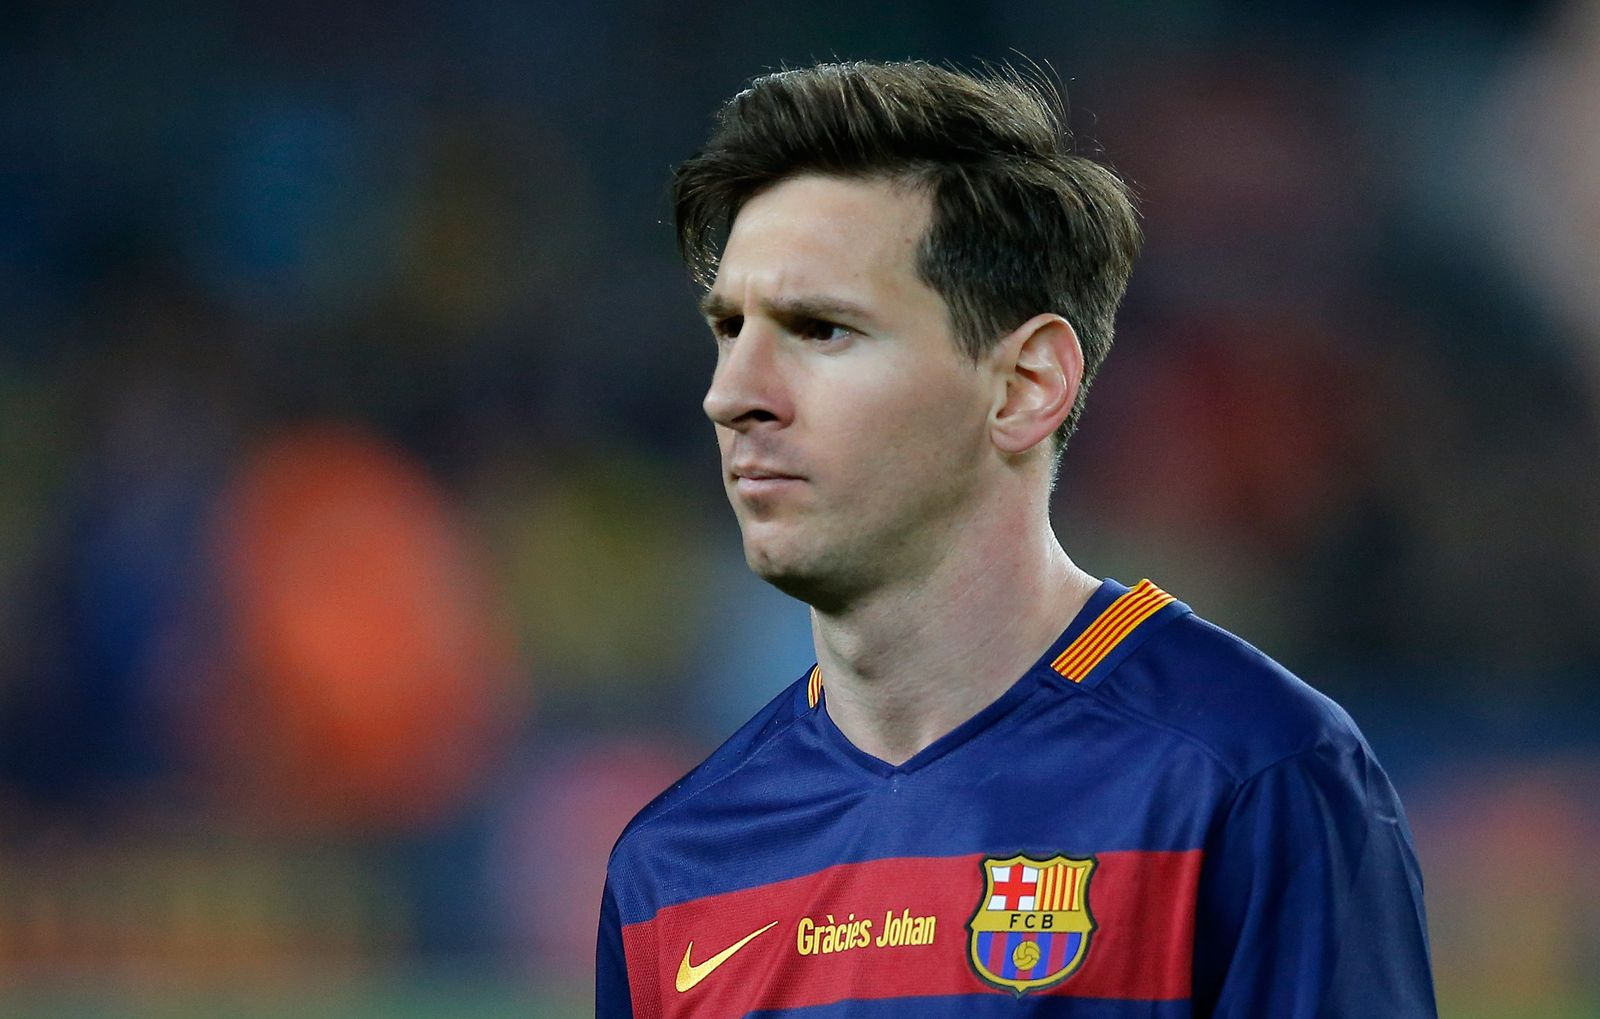 Panama Papers / Lionel Messi